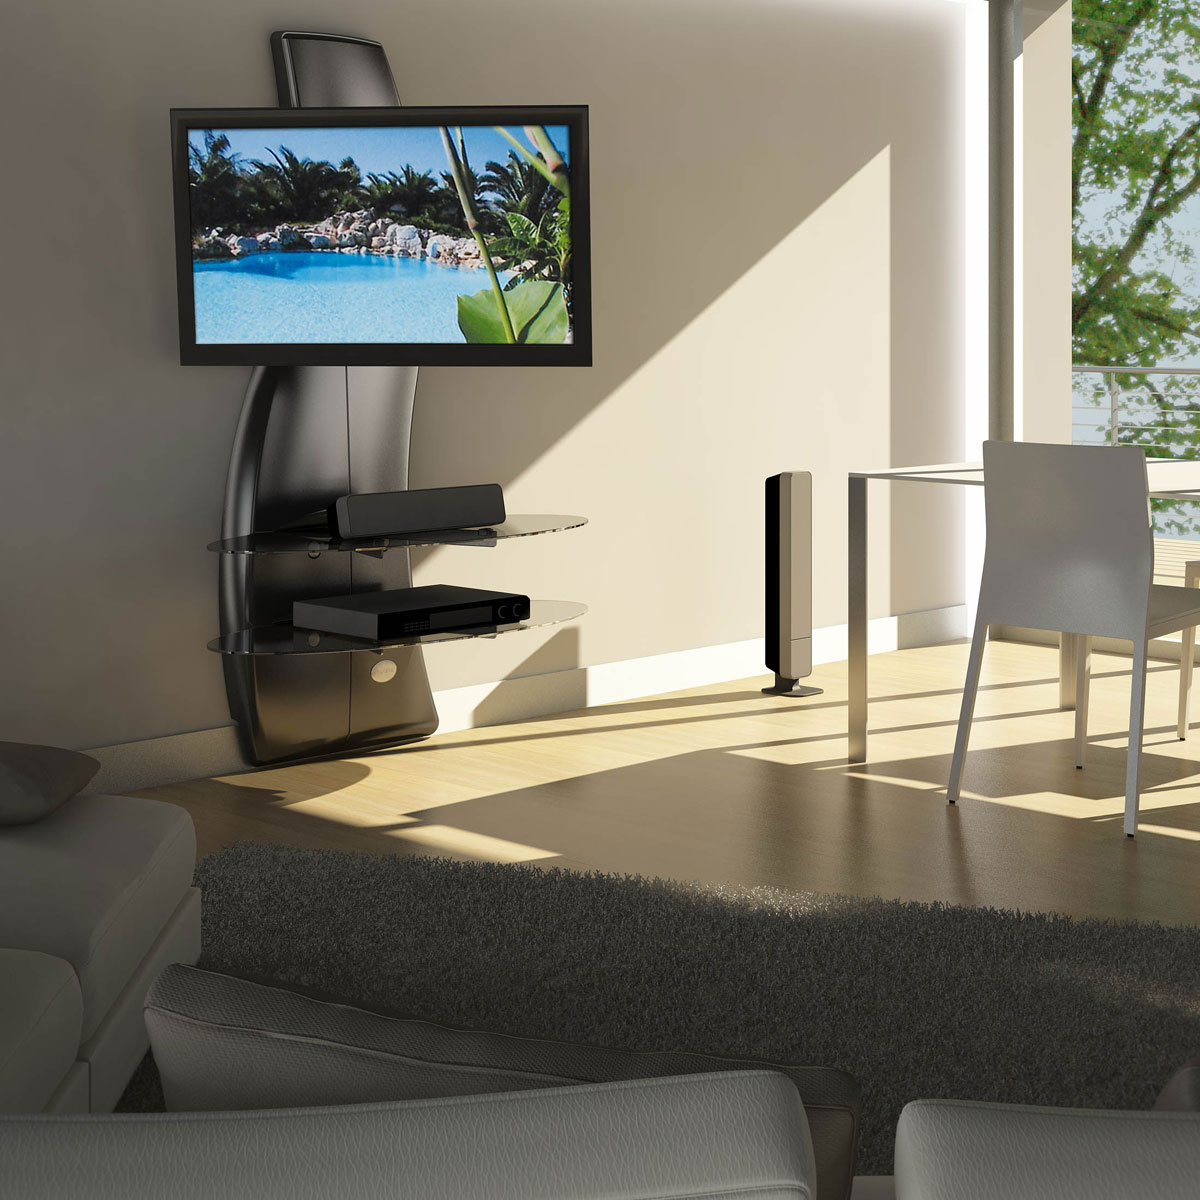 Meliconi ghost design 2000 rotation blanc meuble tv - Support tv sur meuble ...